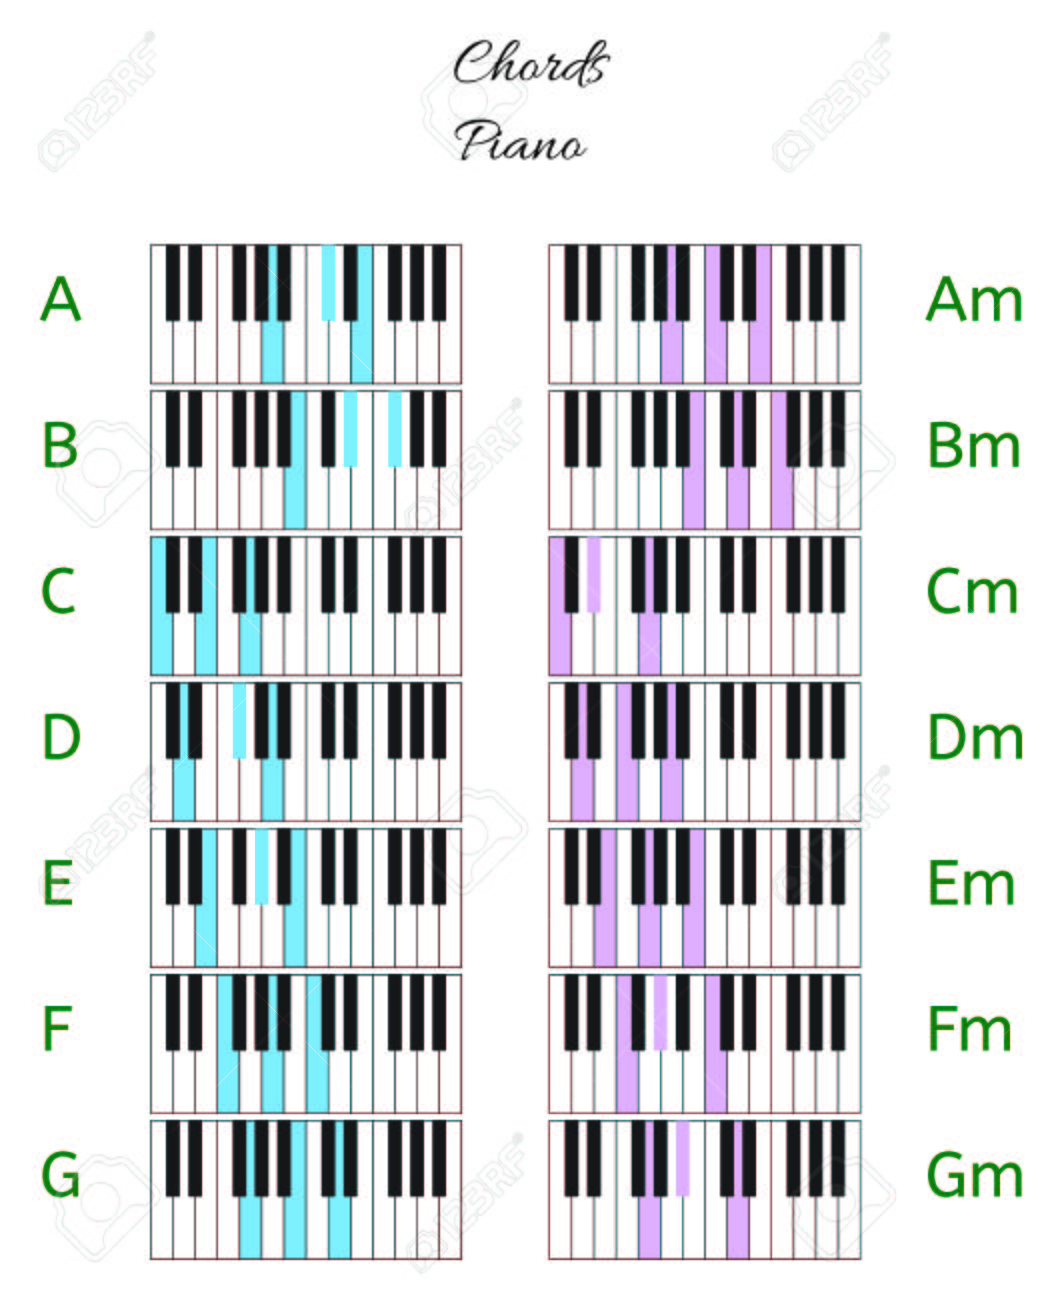 Keyboard piano chords piano chords chart this should help when i play the keyboard i hexwebz Choice Image